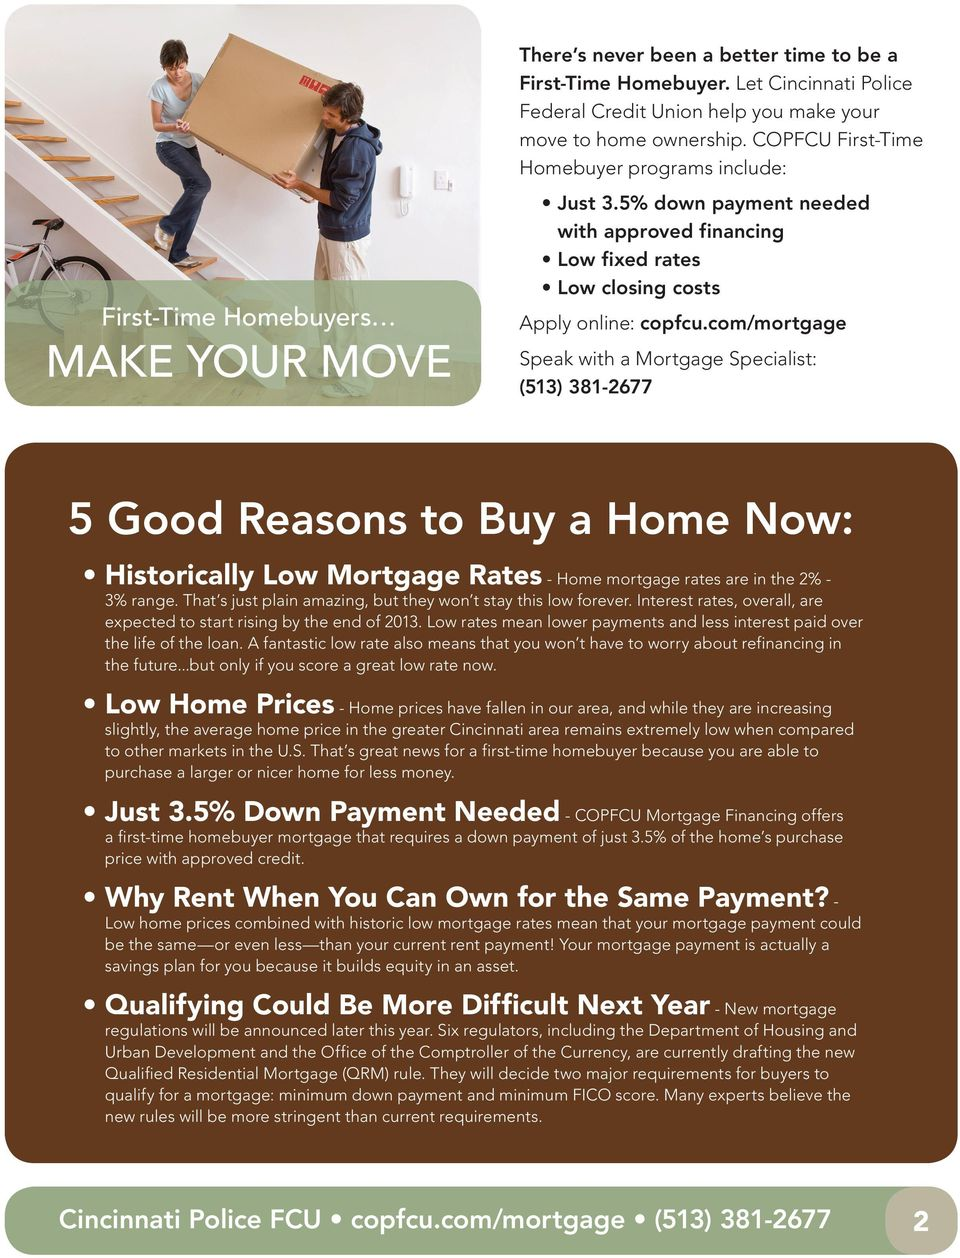 com/mortgage Speak with a Mortgage Specialist: (513) 381-2677 5 Good Reasons to Buy a Home Now: Historically Low Mortgage Rates - Home mortgage rates are in the 2% - 3% range.